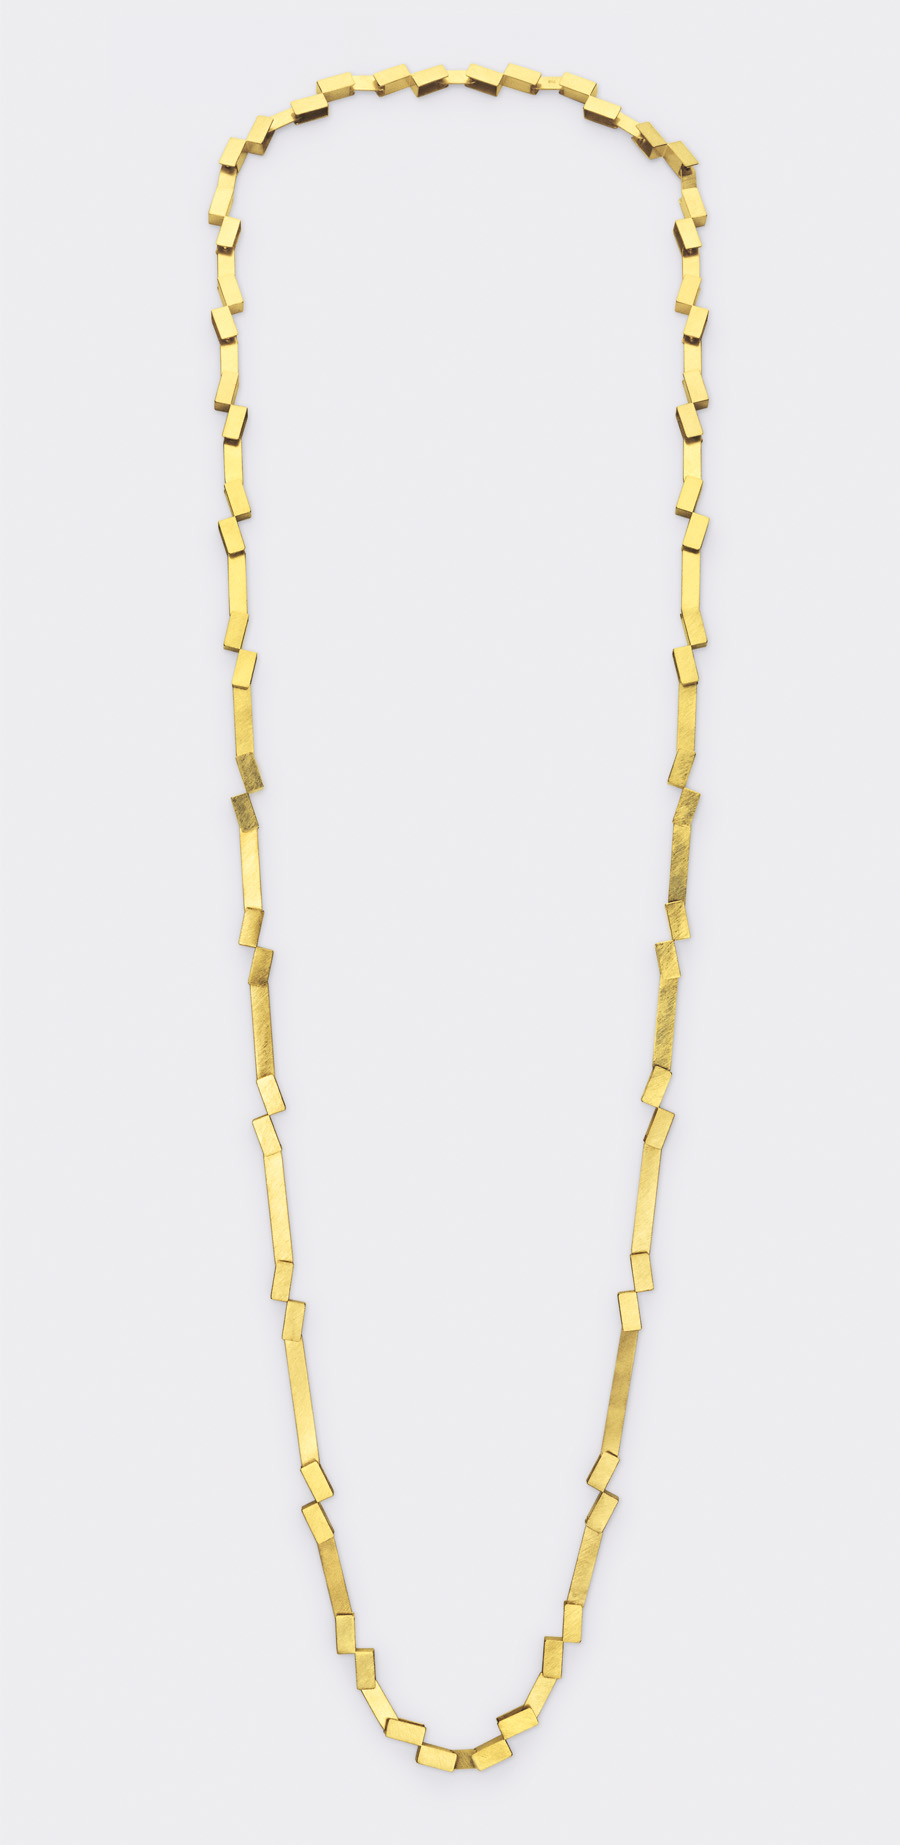 necklace  2004  gold 750  1040  mm